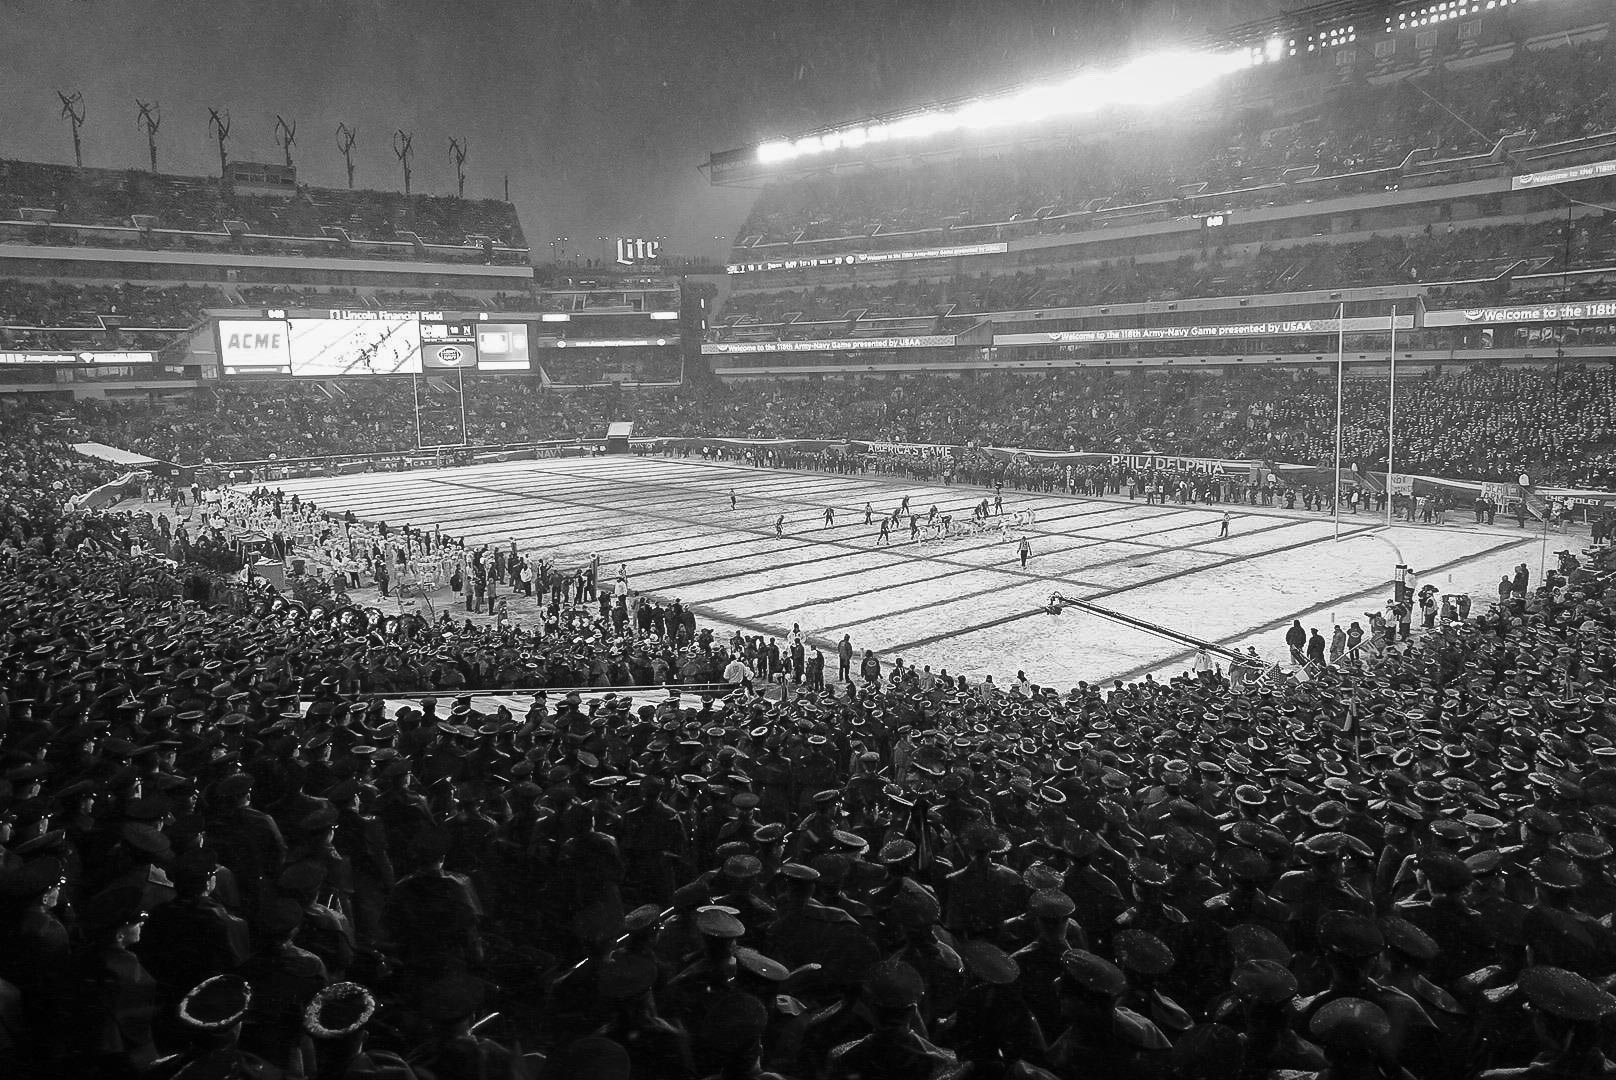 Army/Navy Football - Philadelphia, PA 2017